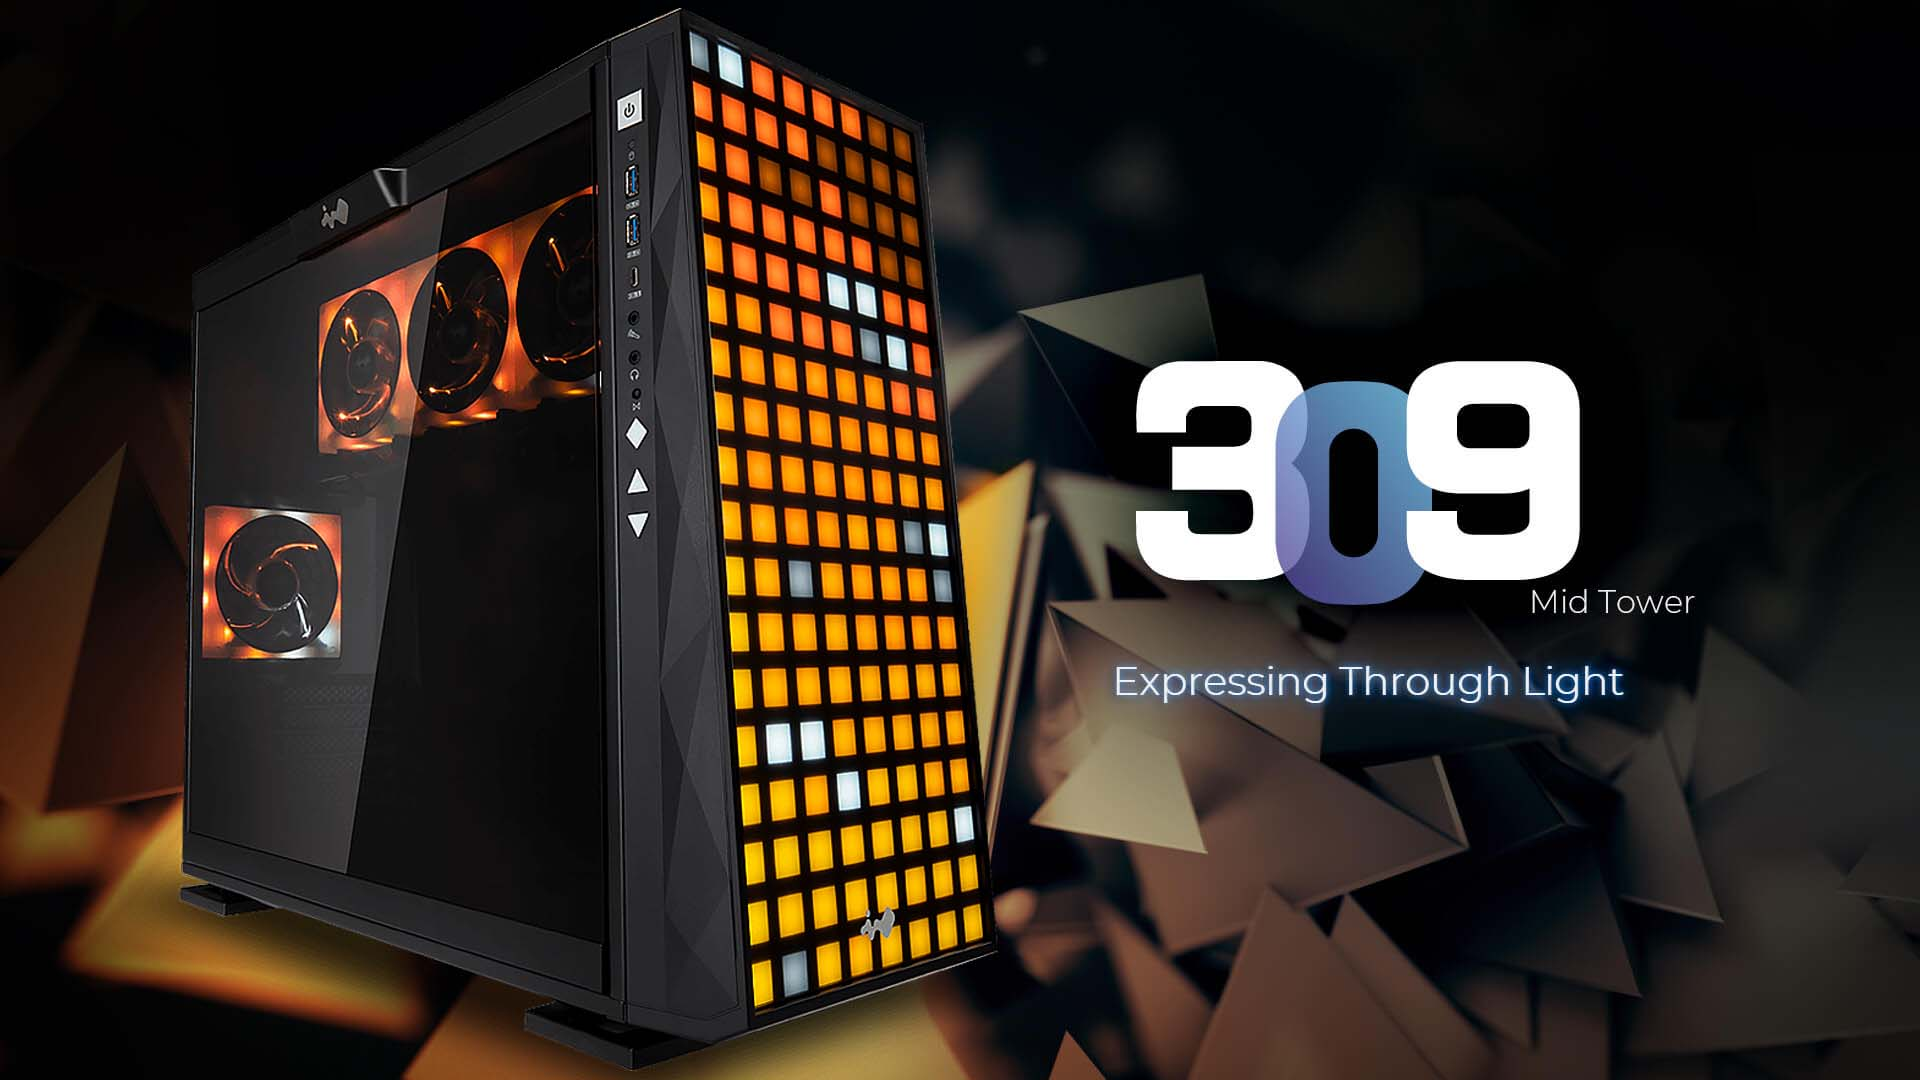 InWin Presents Upgrade 309 Chassis with EGO ARGB Fans and GLOW 2